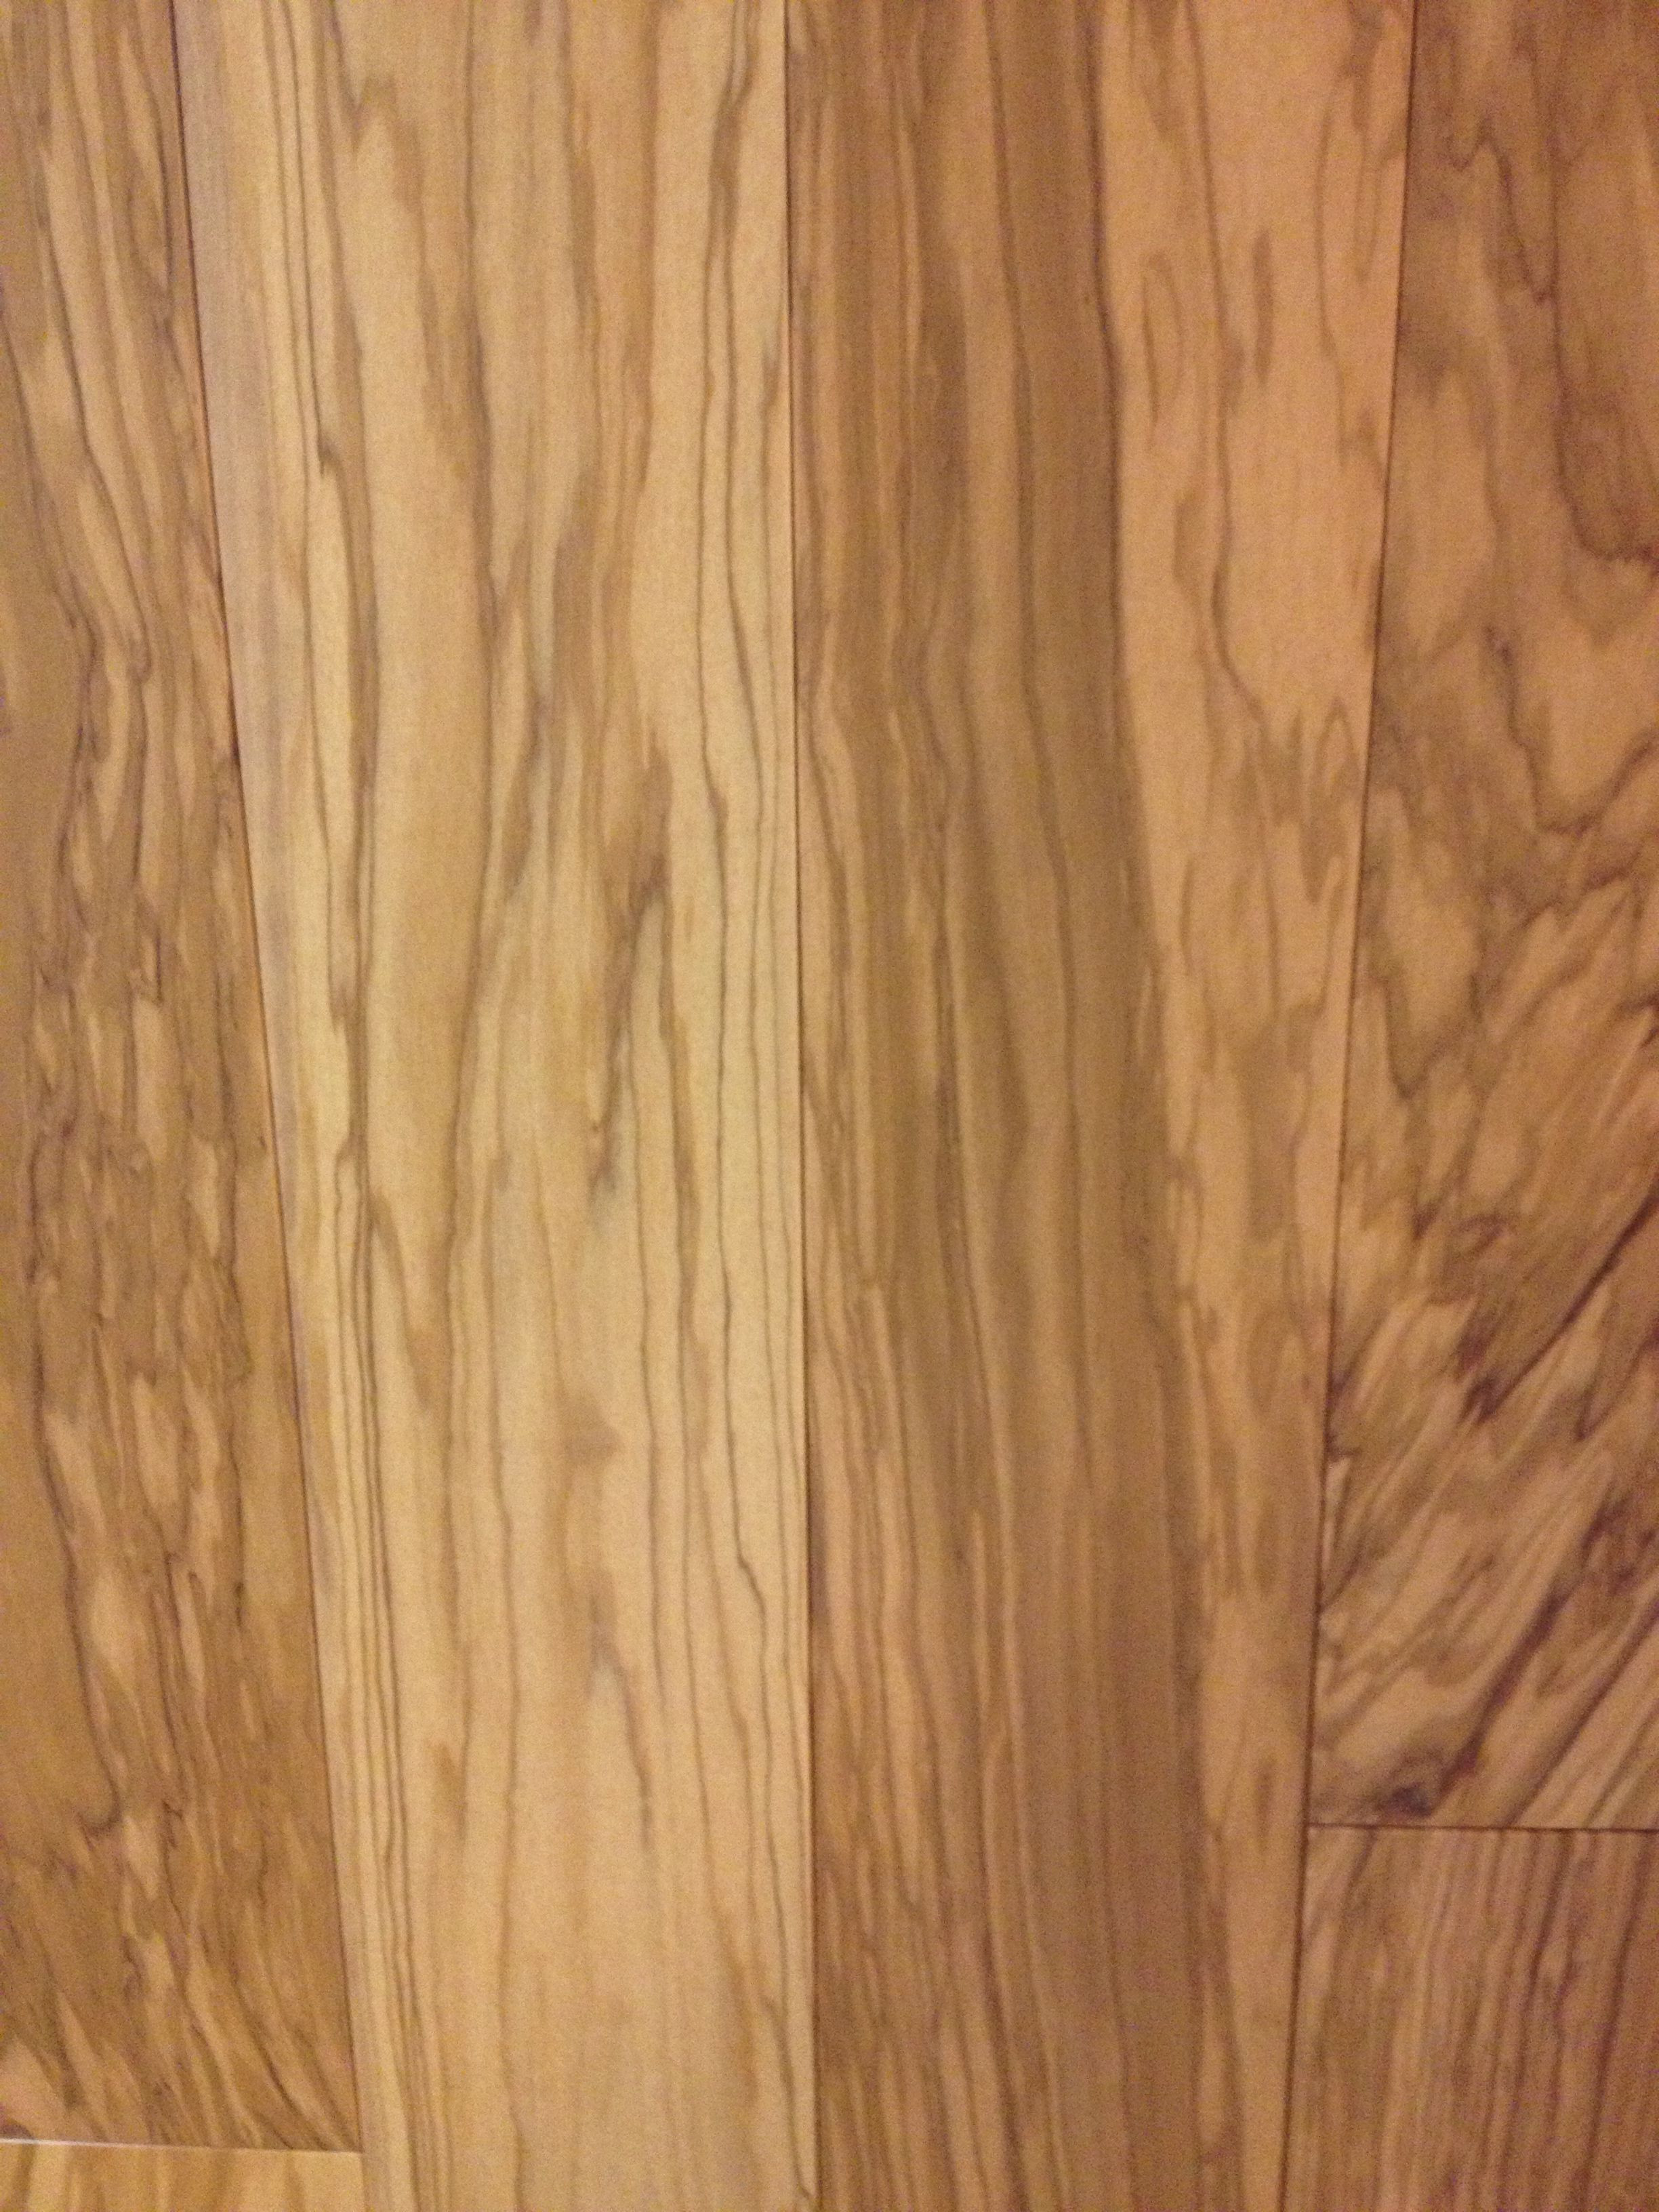 hardwood floor refinishing des moines of tuscany olive wood floor there is nothing quite like olive wood for intended for tuscany olive wood floor there is nothing quite like olive wood for turning your home